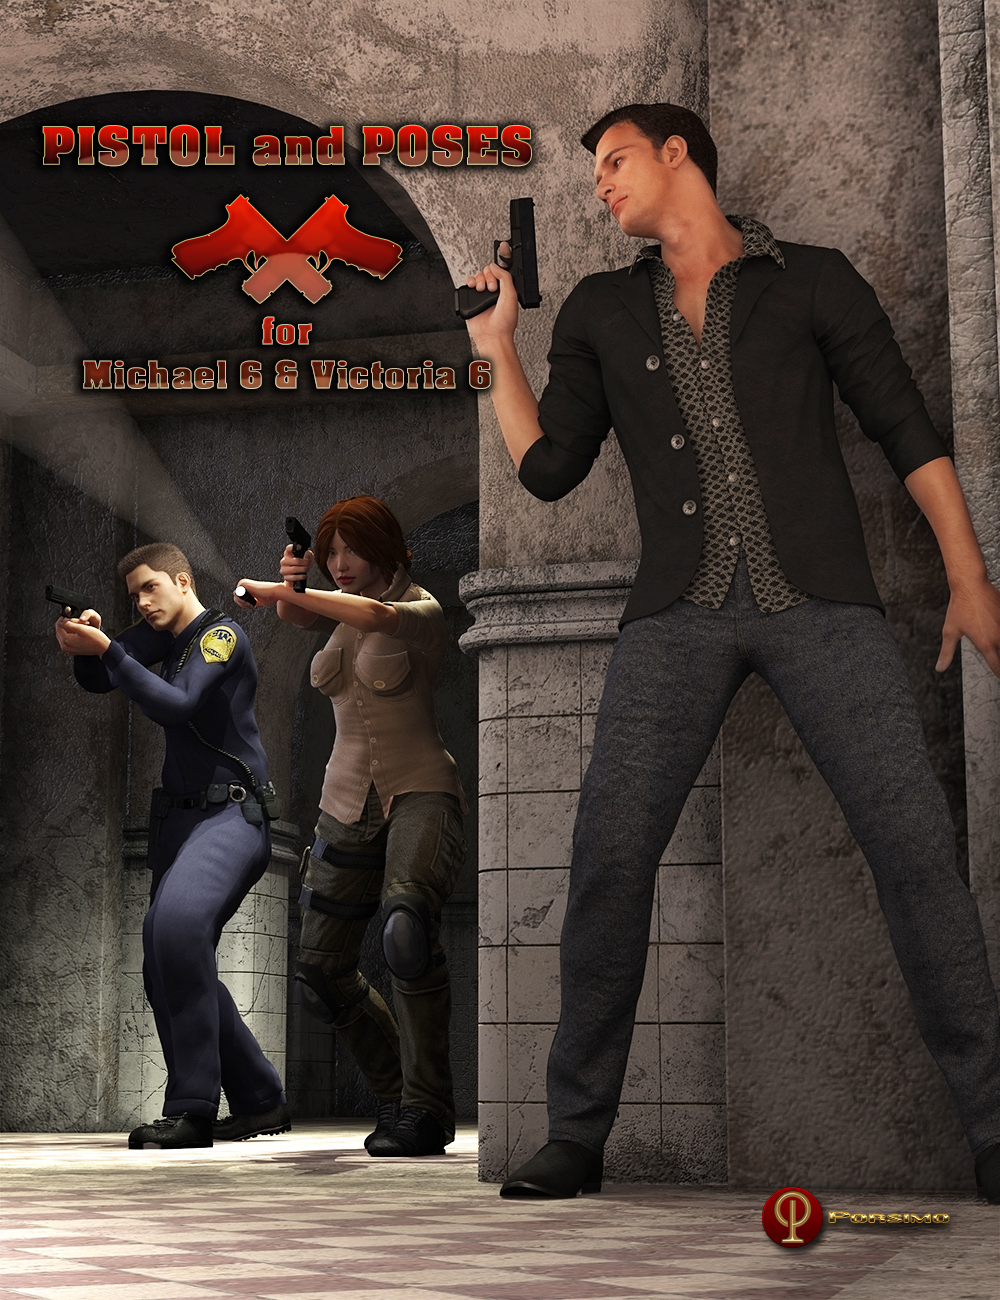 Pistol and Poses for Michael 6 and Victoria 6 by: Porsimo, 3D Models by Daz 3D